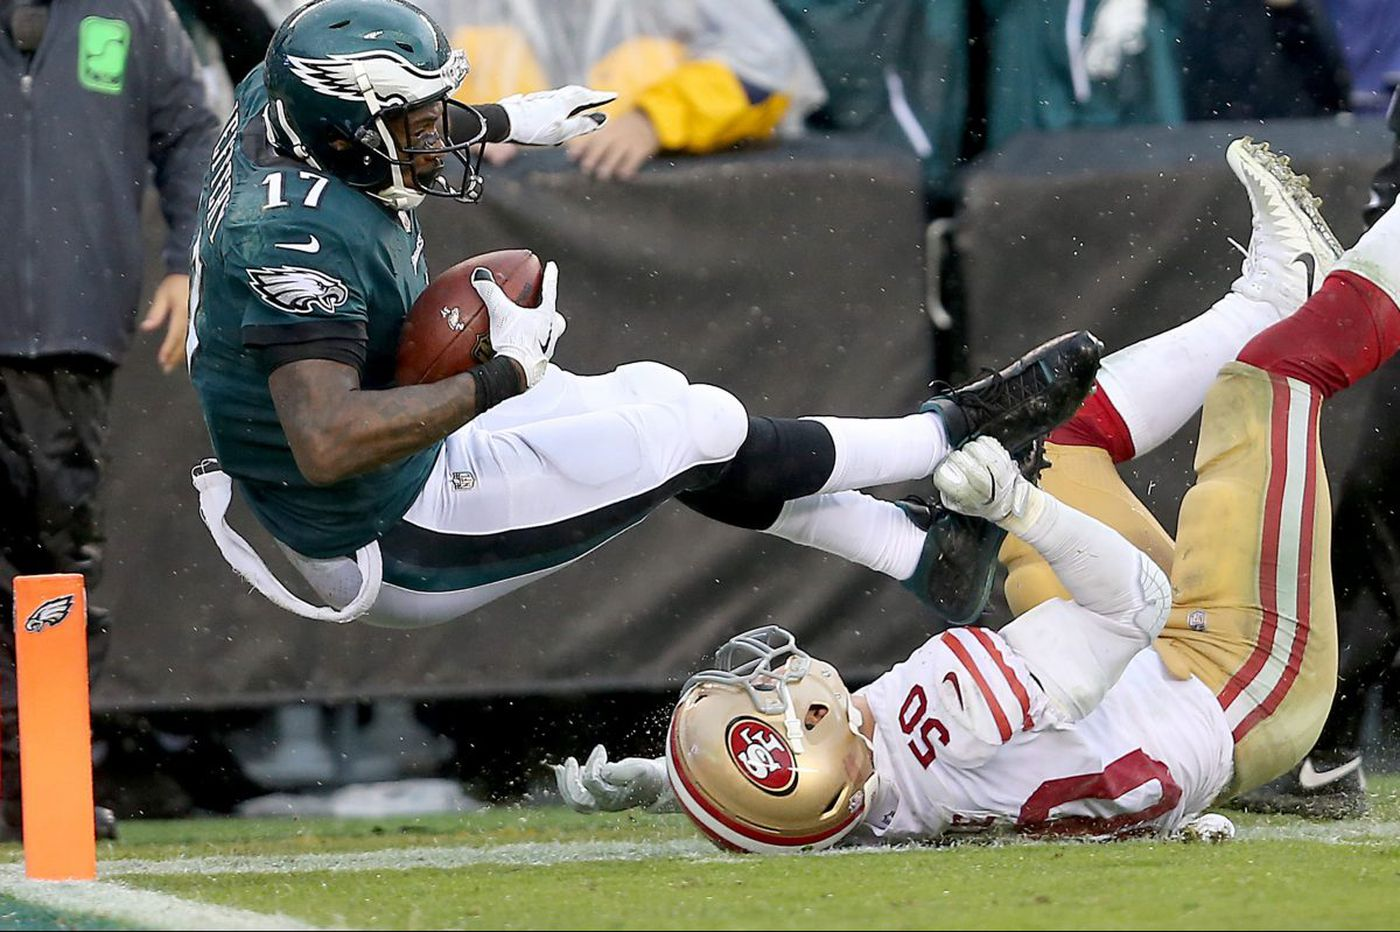 Alshon Jeffery limited in practice, but says ankle will be fine